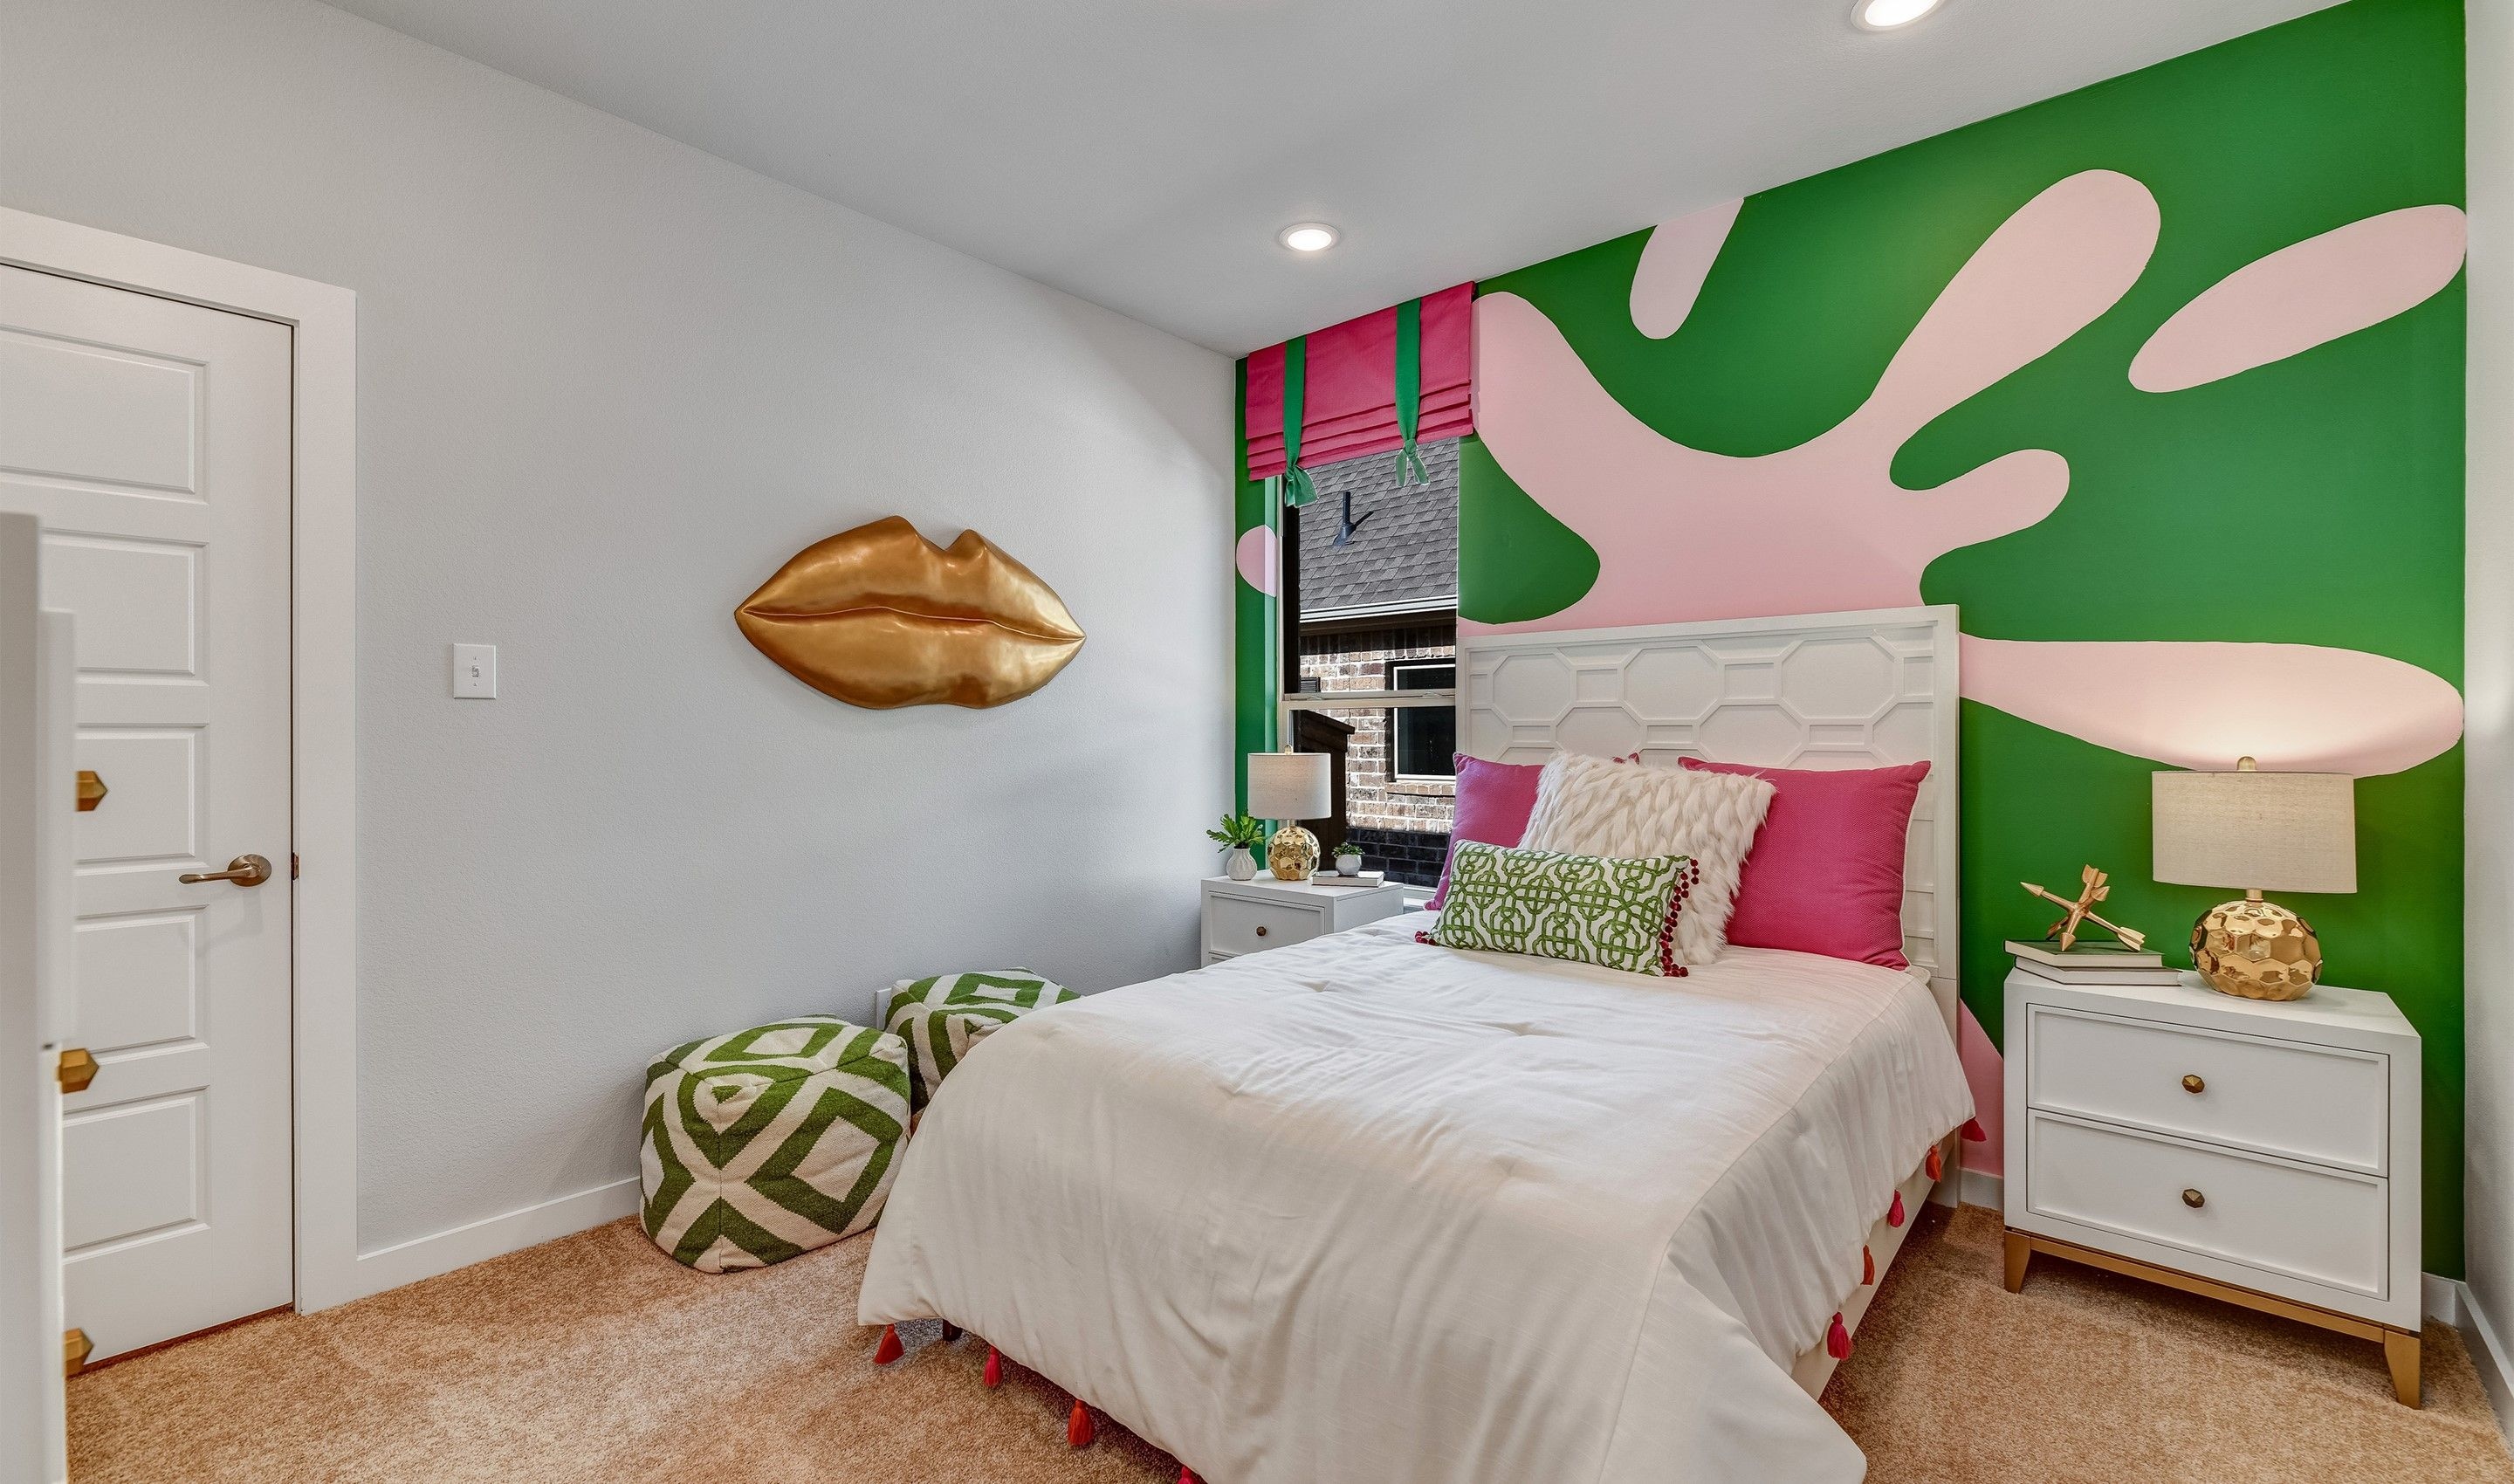 Bedroom featured in the Dover II - 3 Car By K. Hovnanian® Homes in Dallas, TX